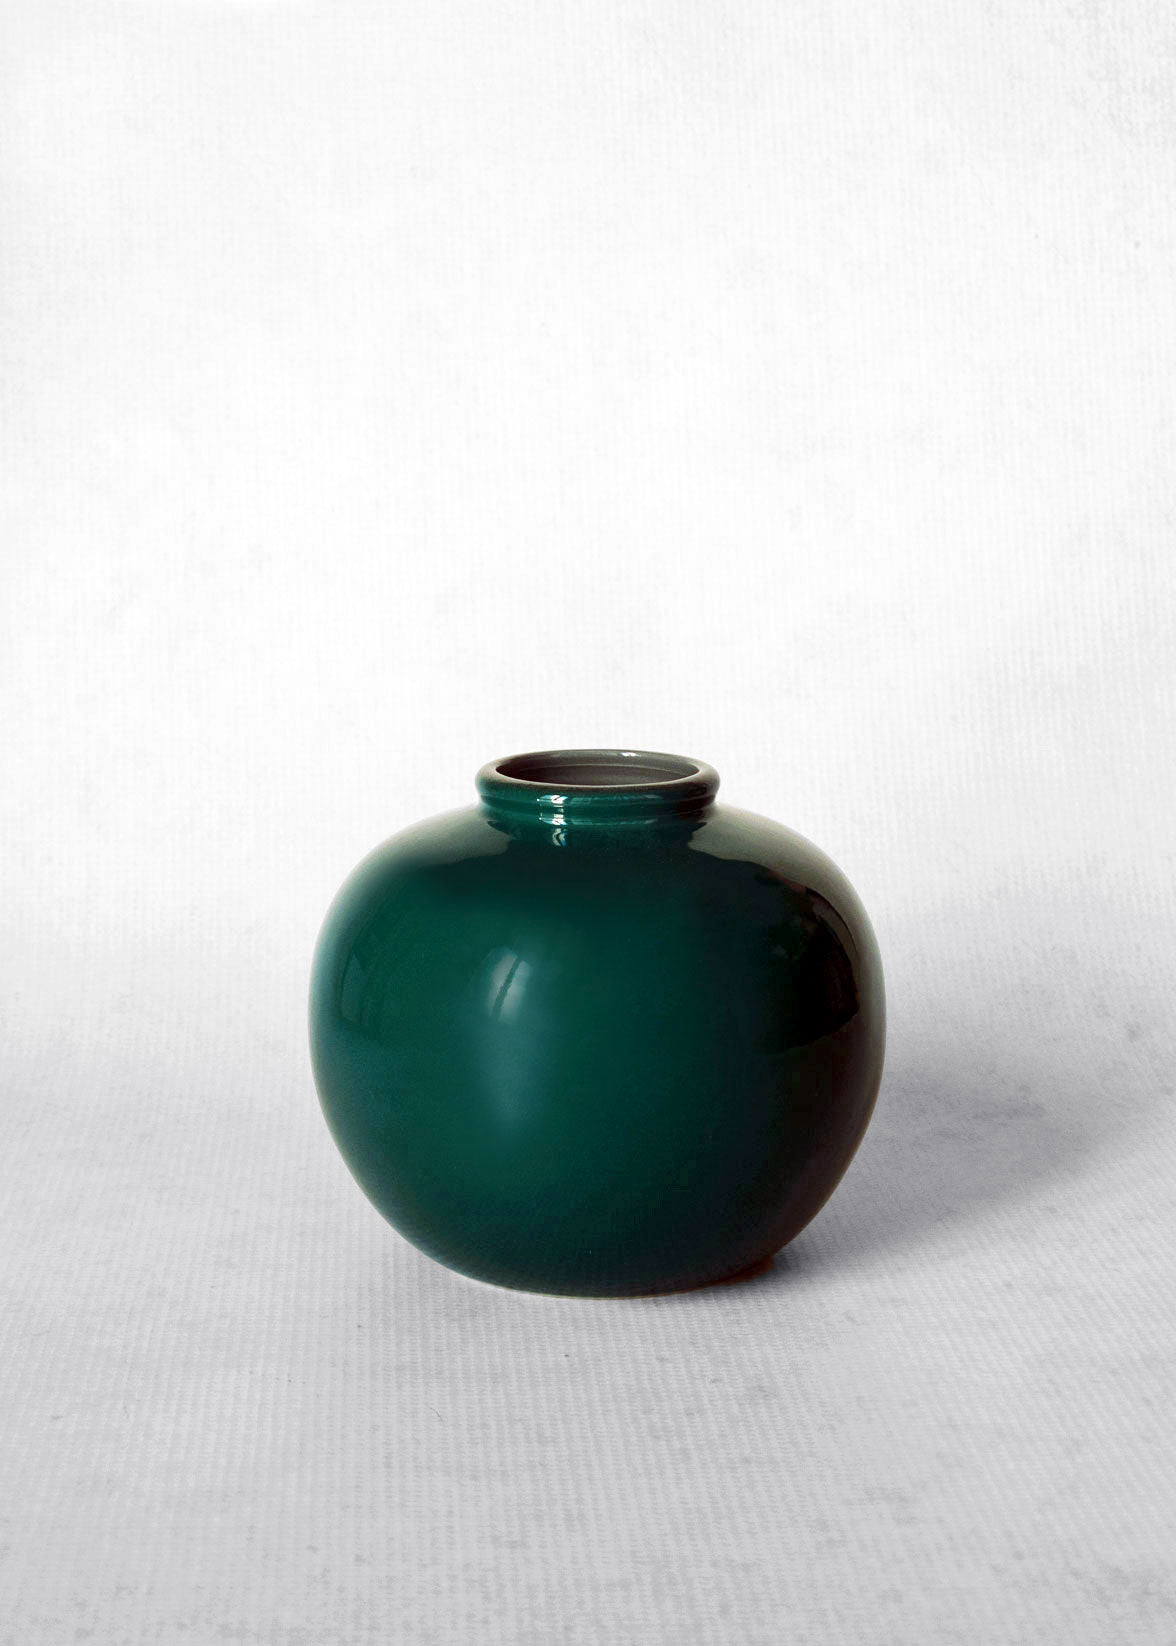 Middle Kingdom Porcelain Jade Ring Vase